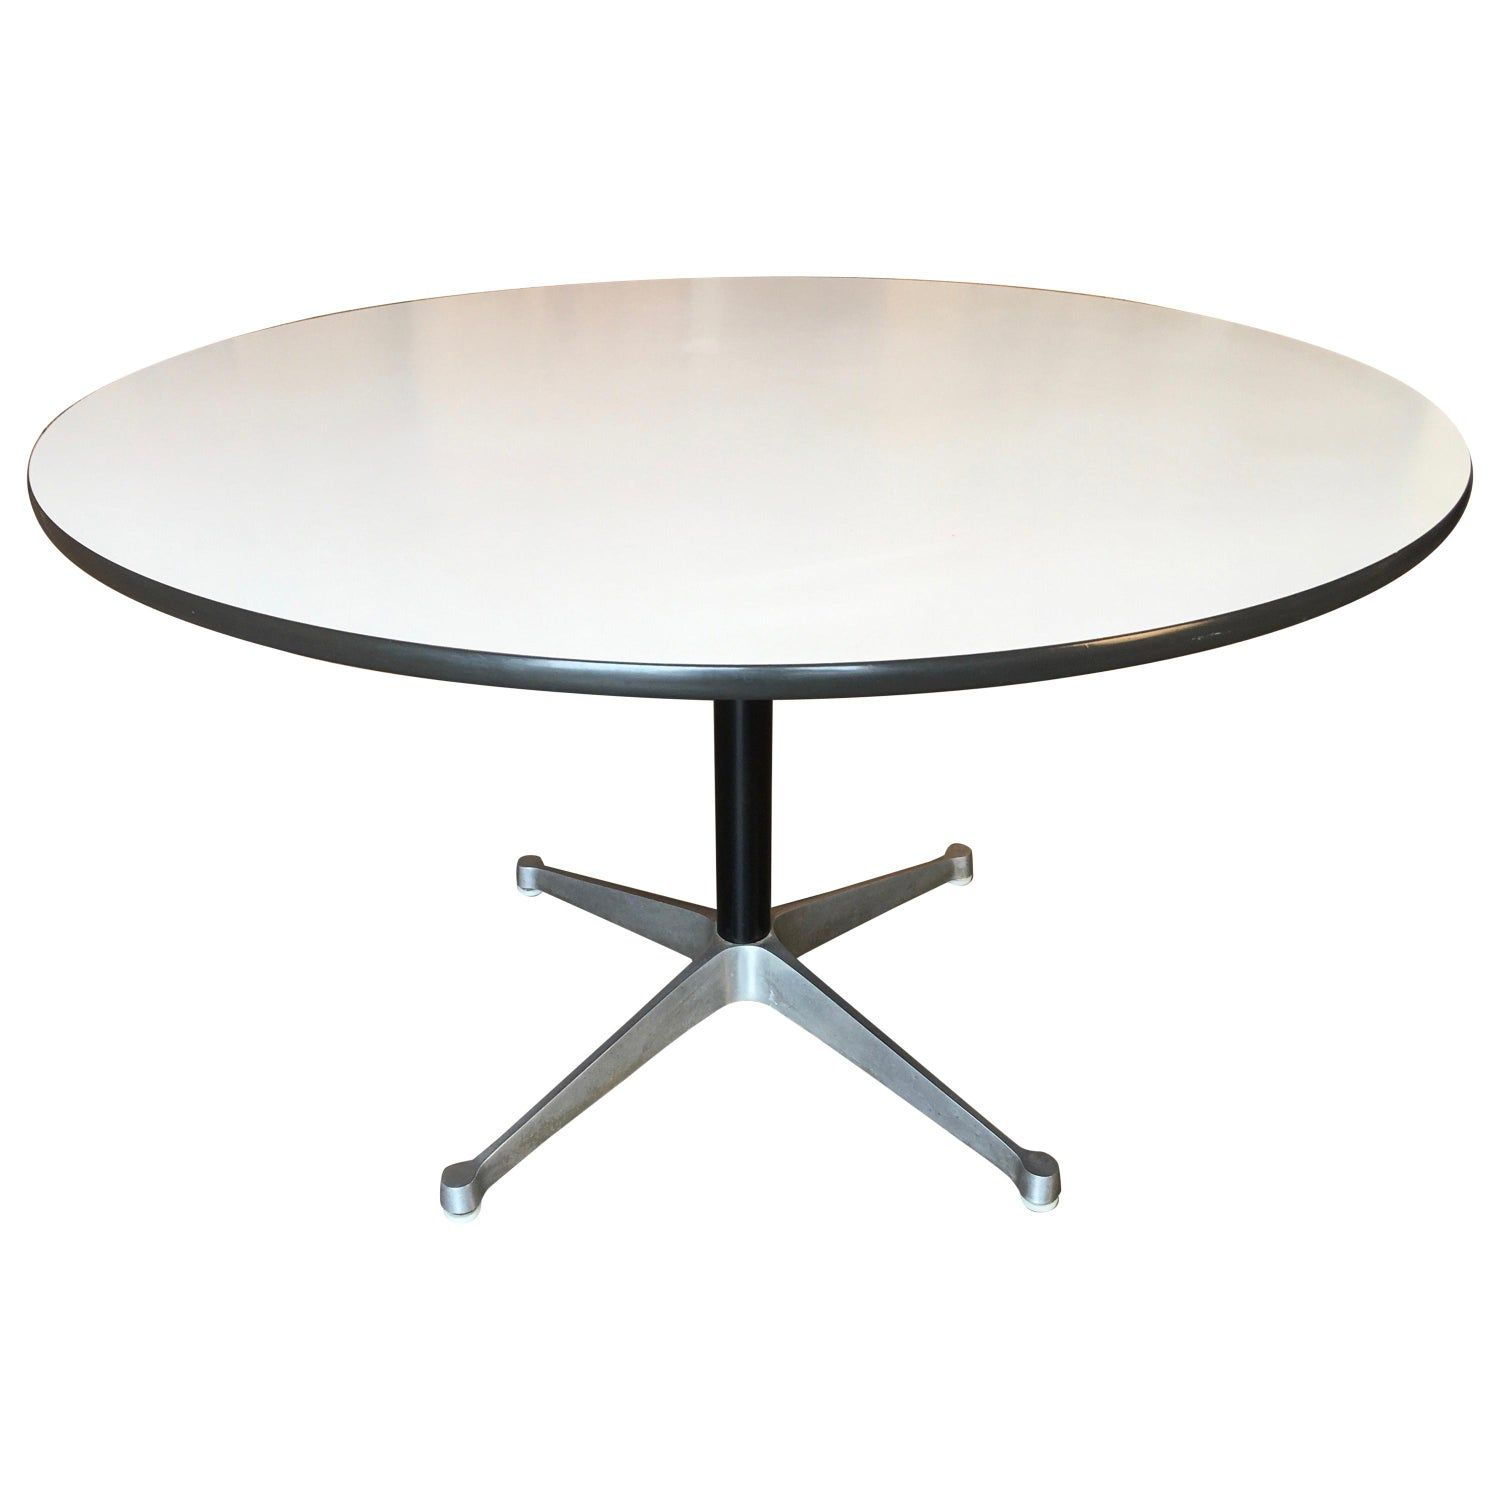 Eames Round Dining Table For Herman Miller 1960s In 2019